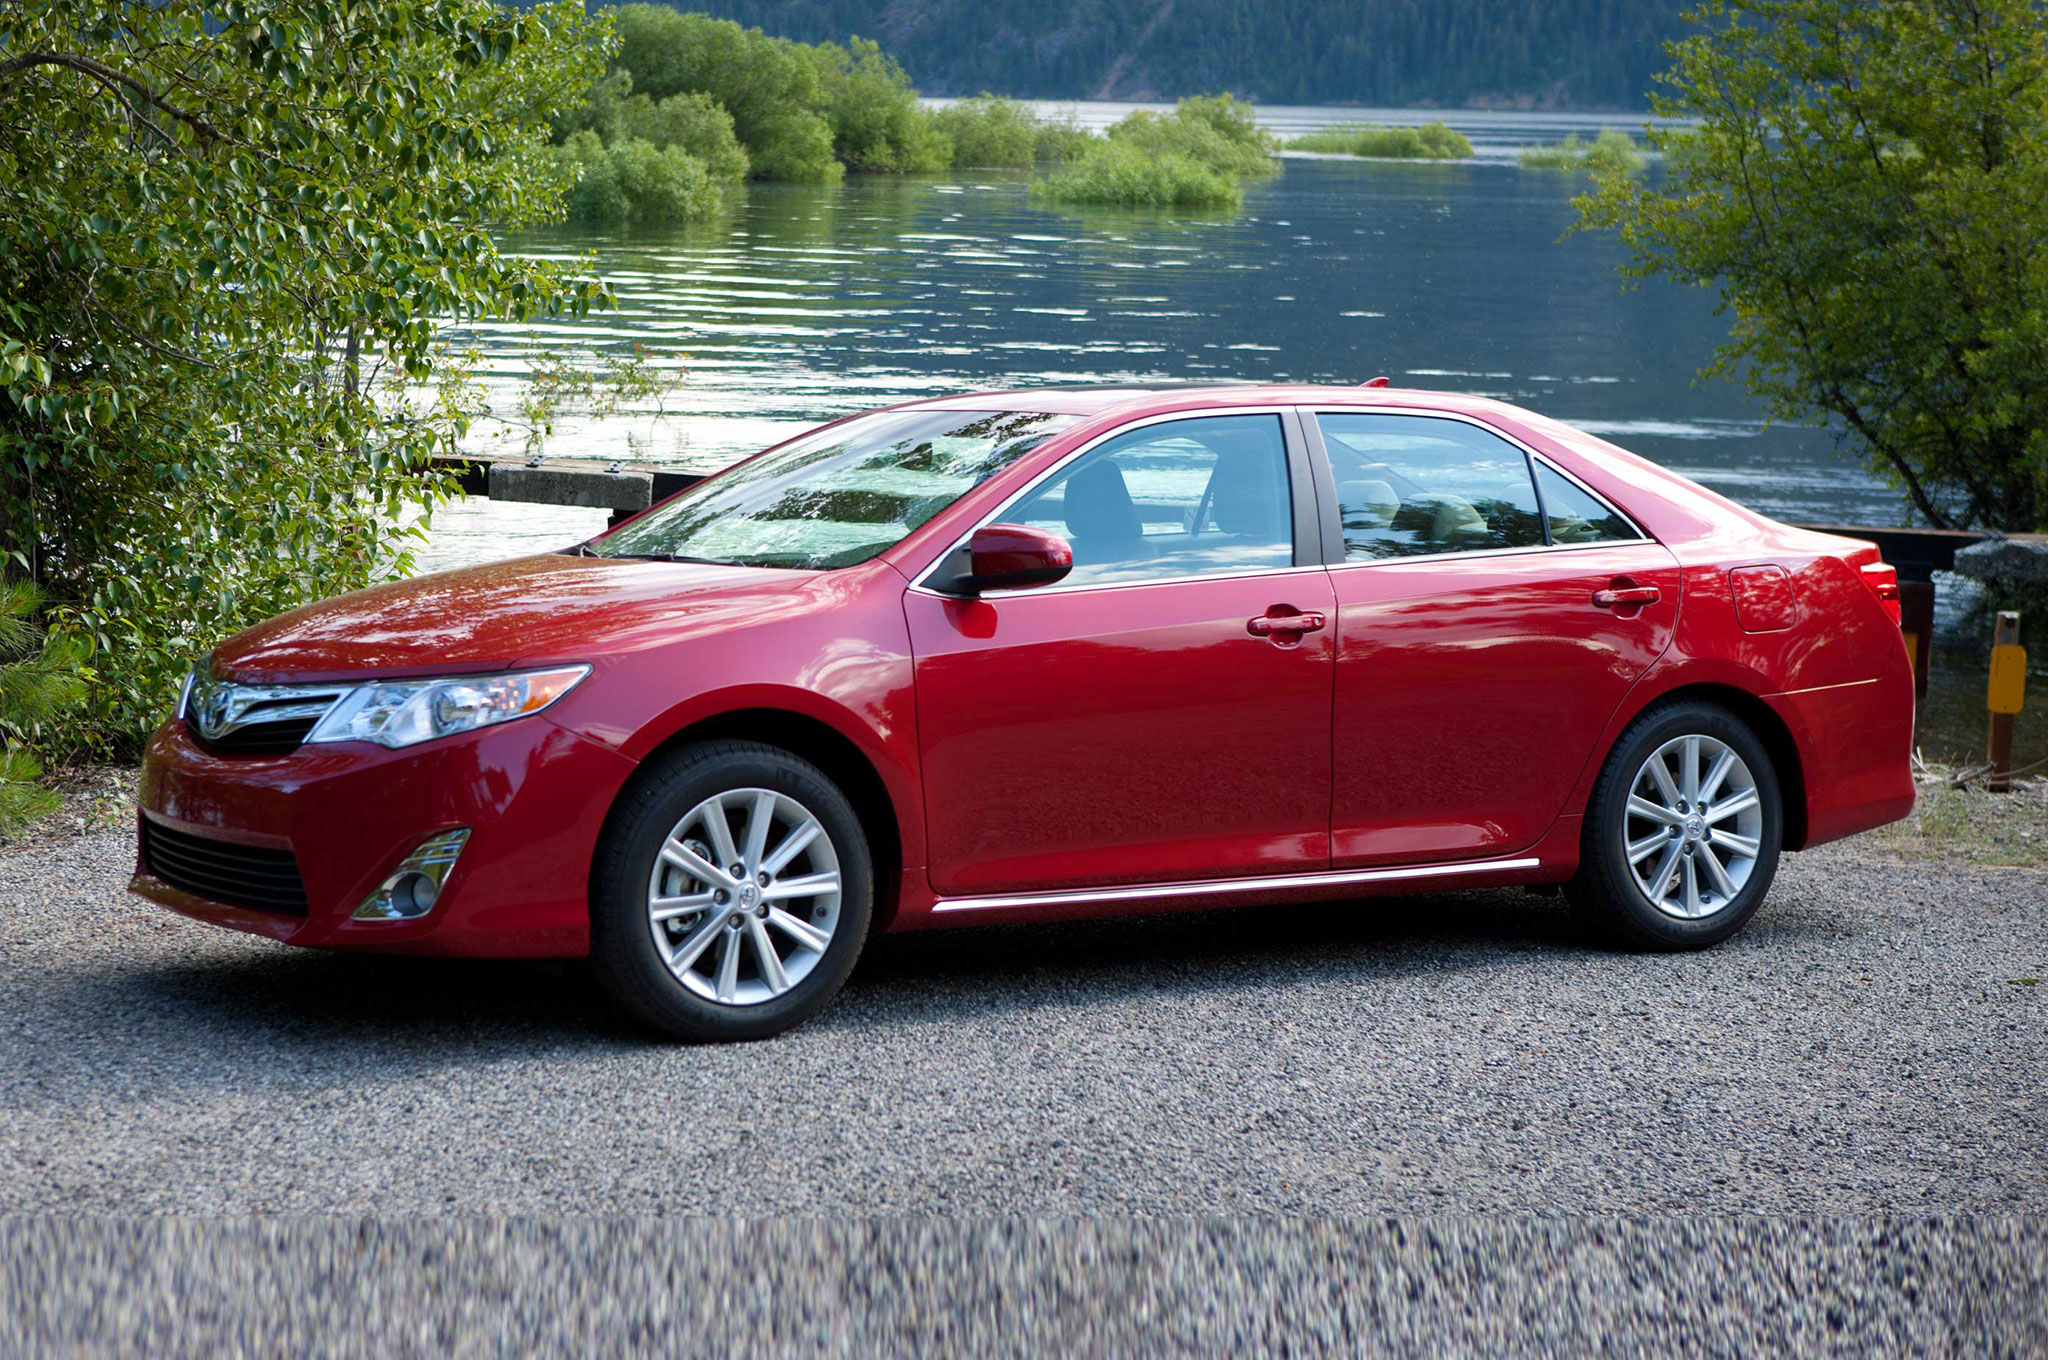 2014 Toyota Camry XL Three Quarters Drivers View 001